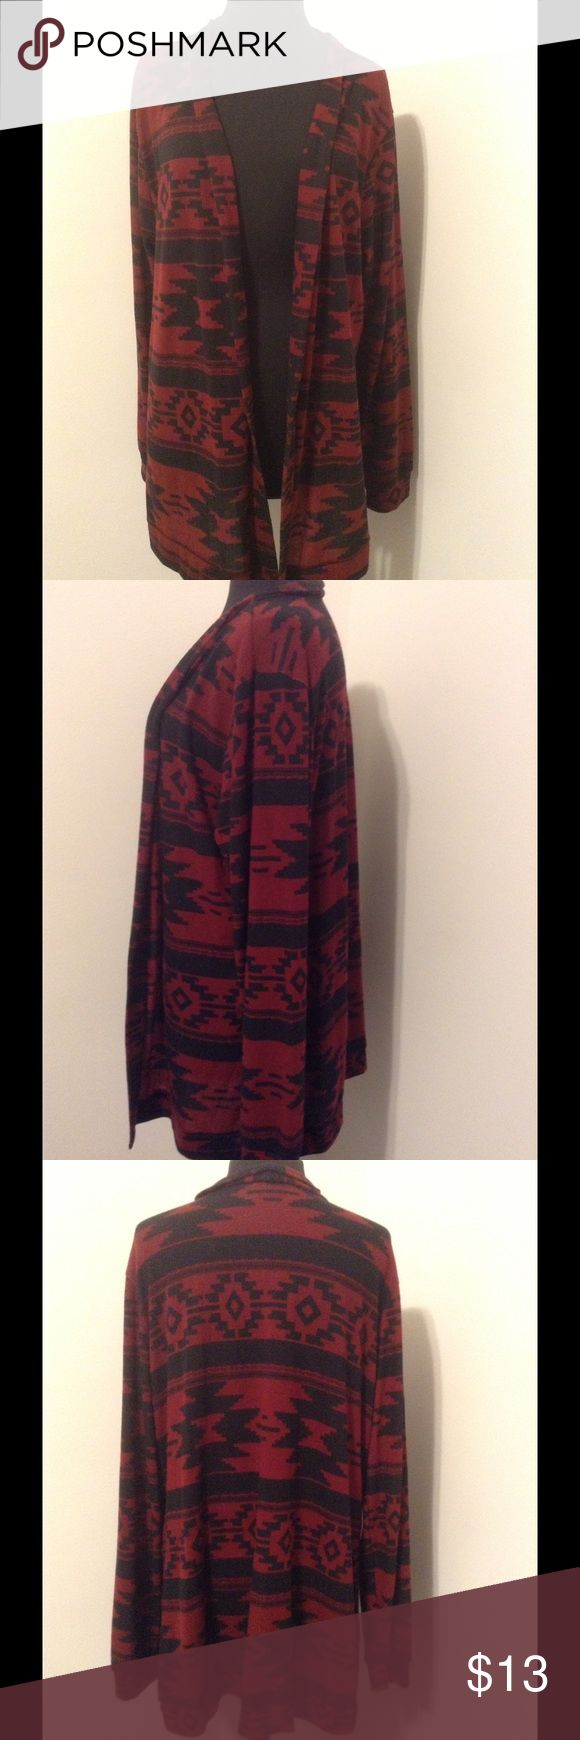 Womens Plus Bobbie Brooks Red Black Duster 3X Bobbie Brooks open duster/sweater/cardigan. Very nice. Has a southwestern pattern, long. Lightweight.  •95% polyester, 5% spandex •Open duster •Long sleeves •red, black •pre-owned and in very nice condition •stretches •machine wash •necklace not included •size 2X Always go by measurements provided rather than tag size. Measurements are around and taken while item is lying flat. •Chest: open •Waist:  open •Hemline: open…